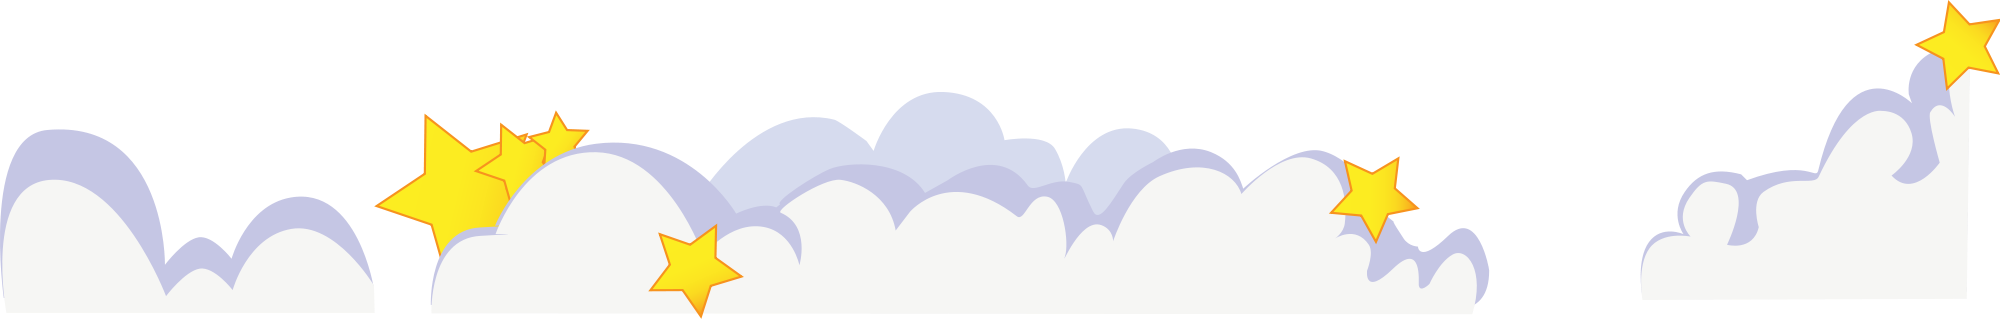 Clouds cartoon png. File cute with stars